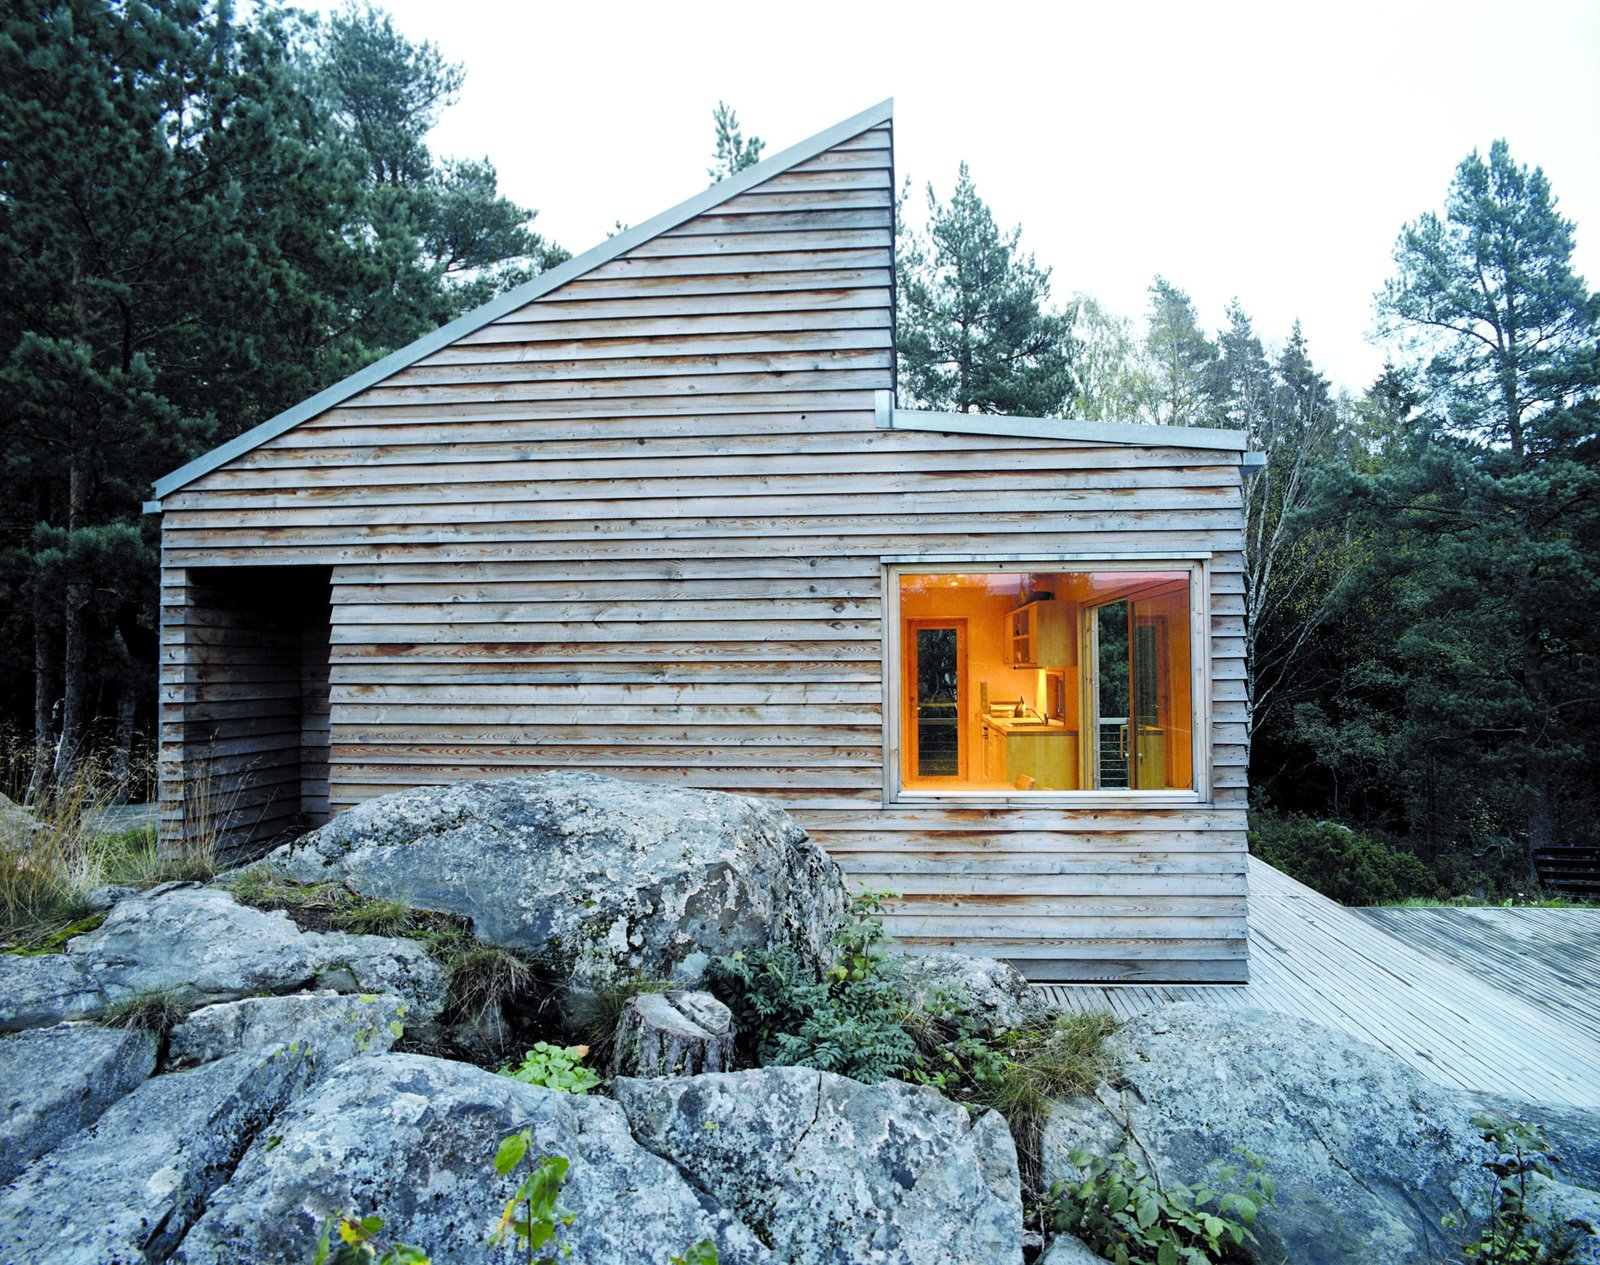 Outdoor, Wood, House, Boulders, Side Yard, Large, and Wood Woody35's distinct shape makes it stand out from its surroundings despite the modest size of the building.  Best Outdoor Large House Photos from A Prefab Cabin in Norway